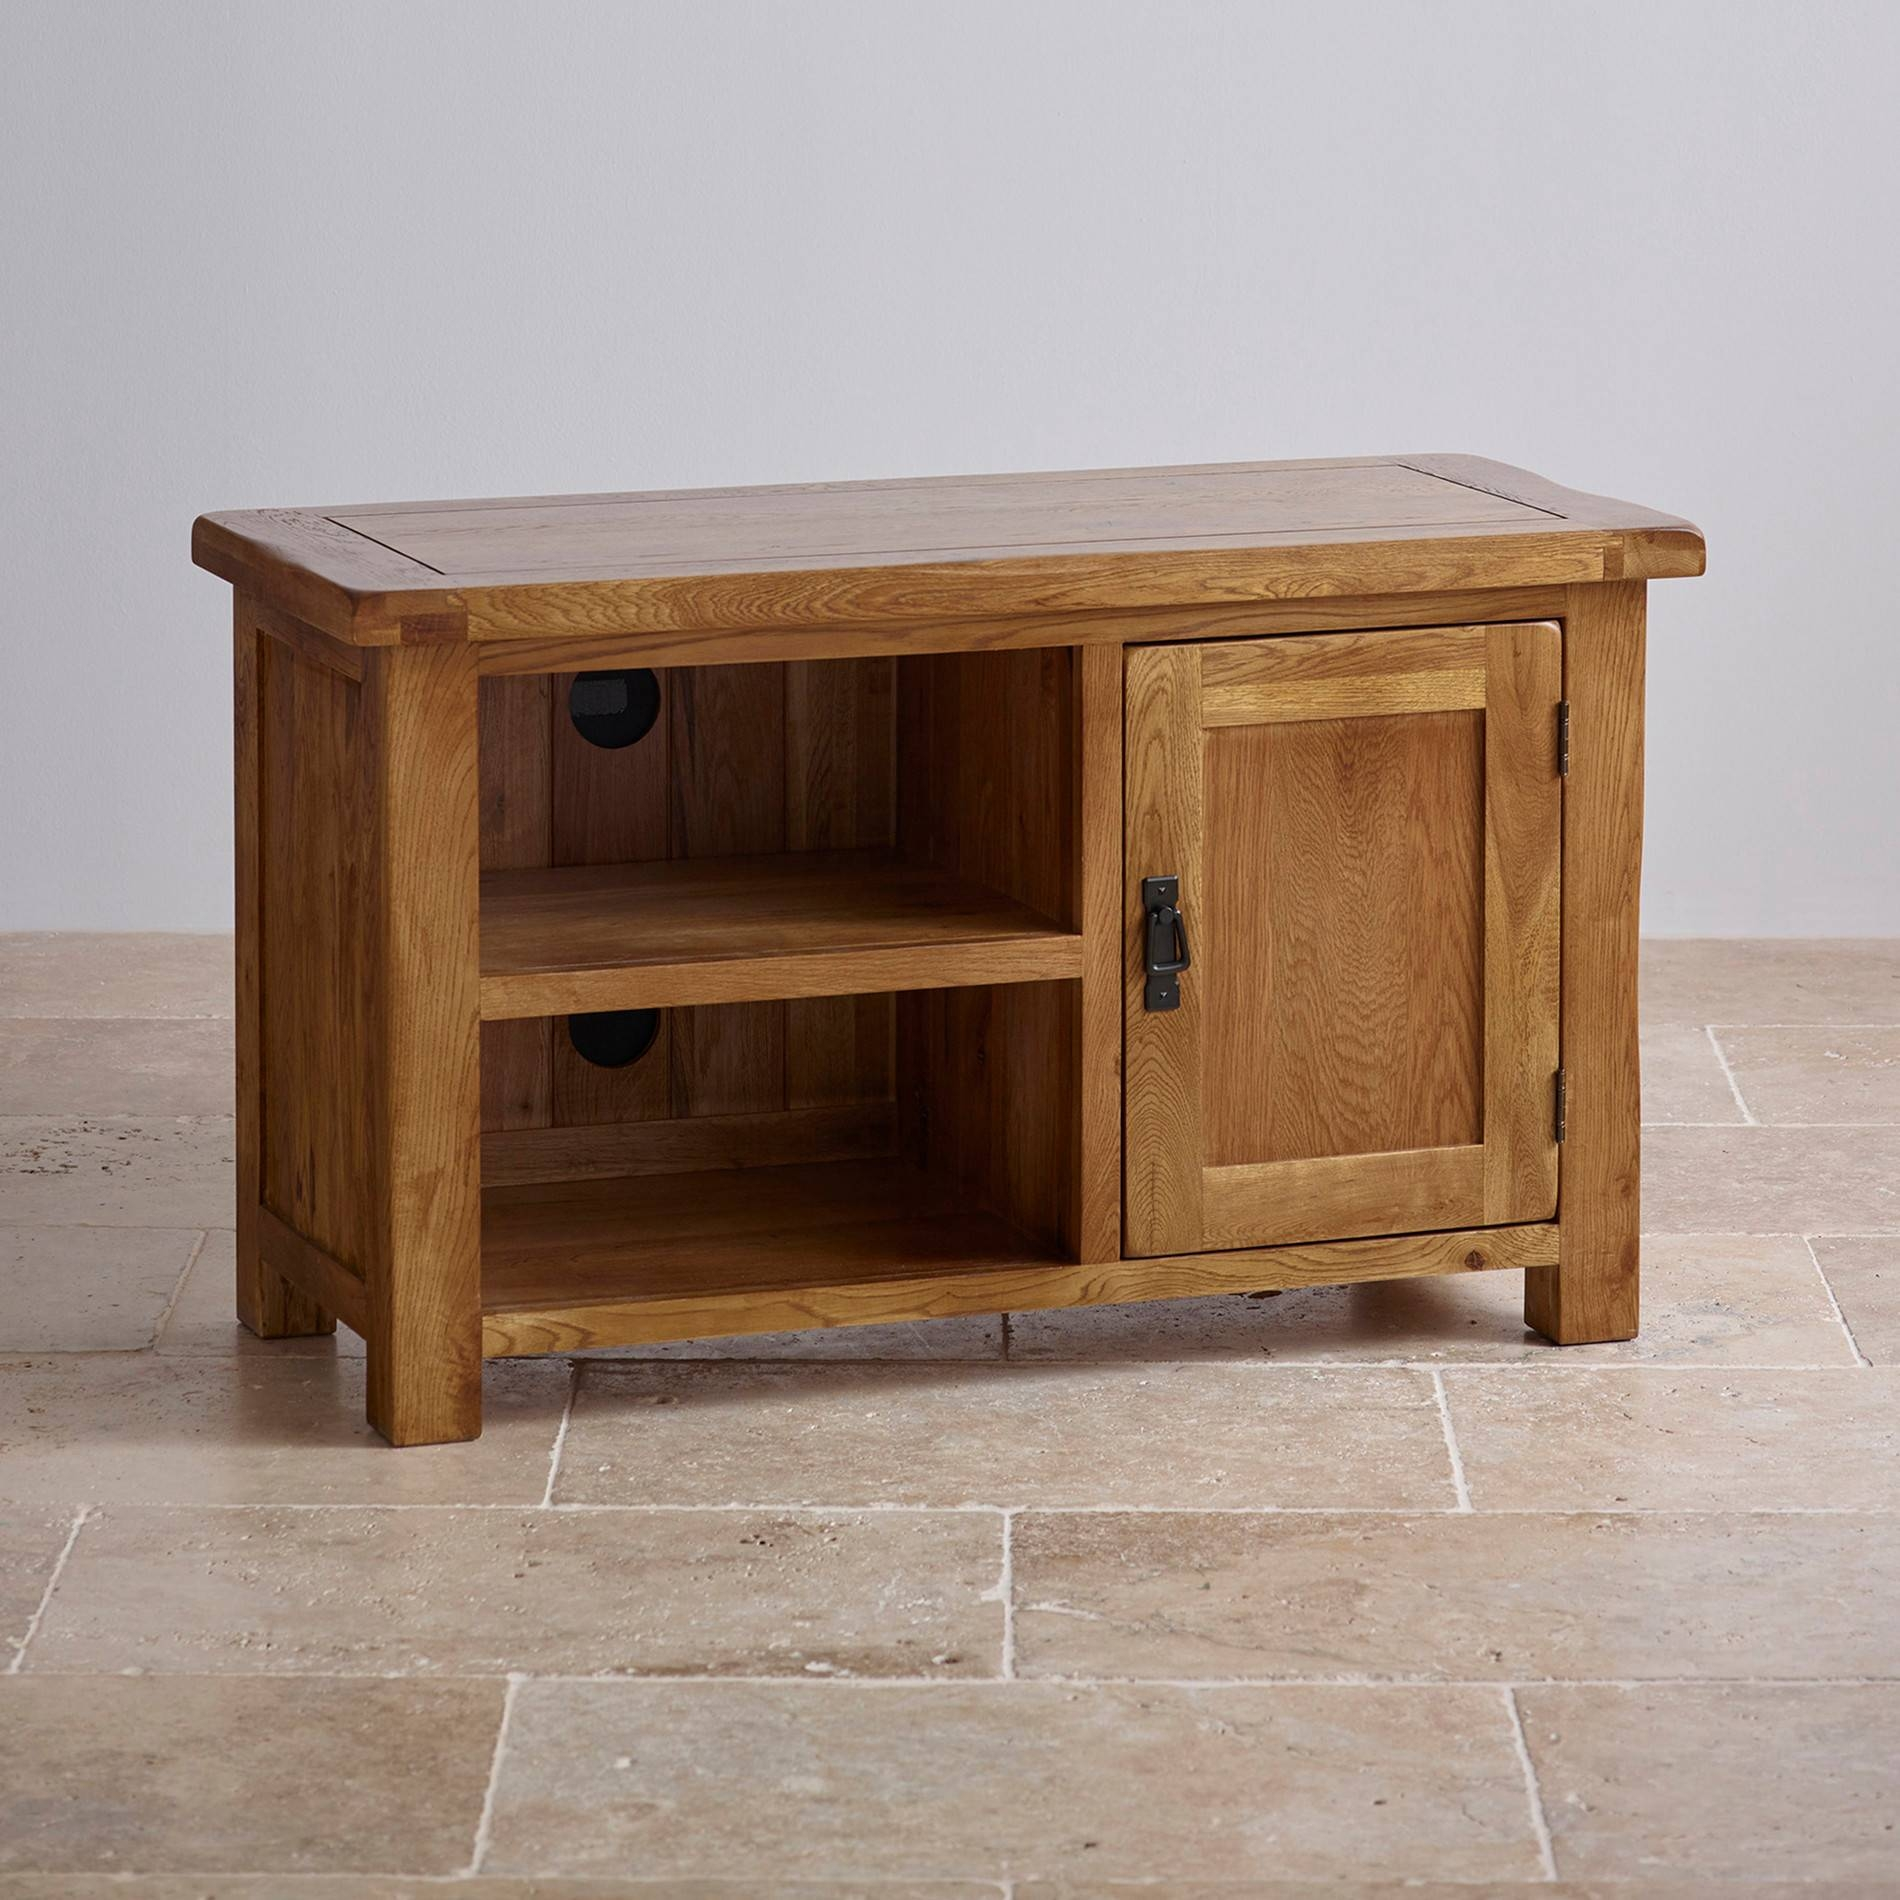 Original Rustic Tv Cabinet In Solid Oak | Oak Furniture Land for Hardwood Tv Stands (Image 8 of 15)